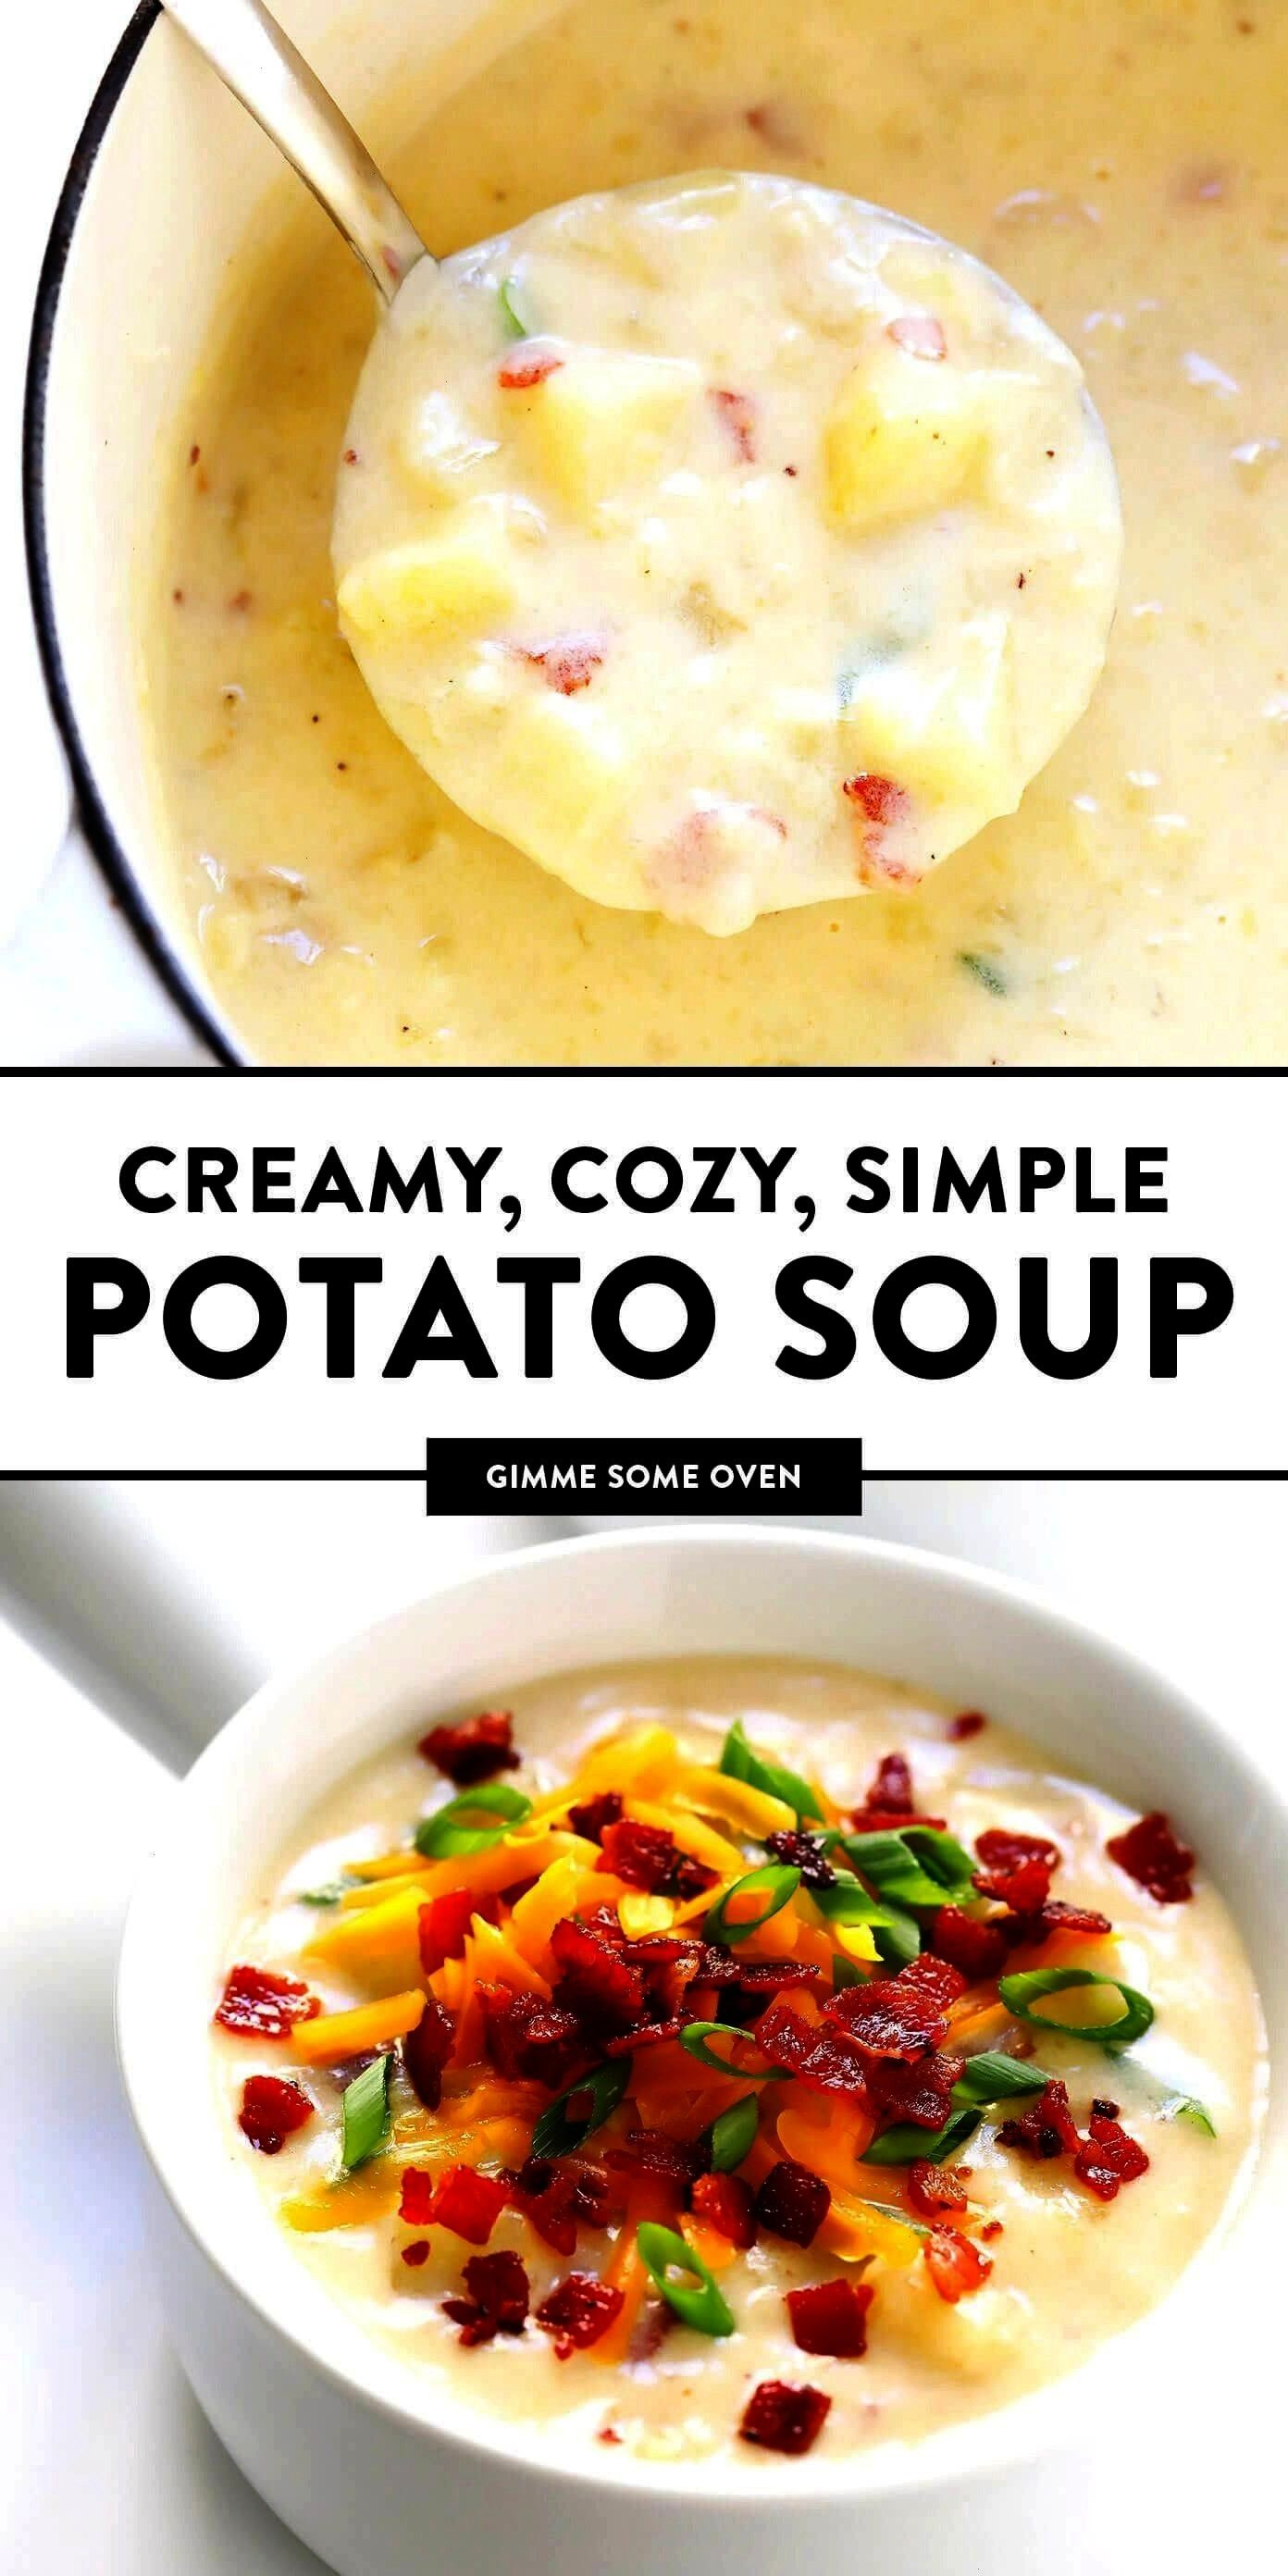 Soup recipe Its quick and easy to make nice and creamy with zero heavy cream with lots of bacon if youd like Total comfort food  Gimme Some OvenThe BEST Potato Soup recip...